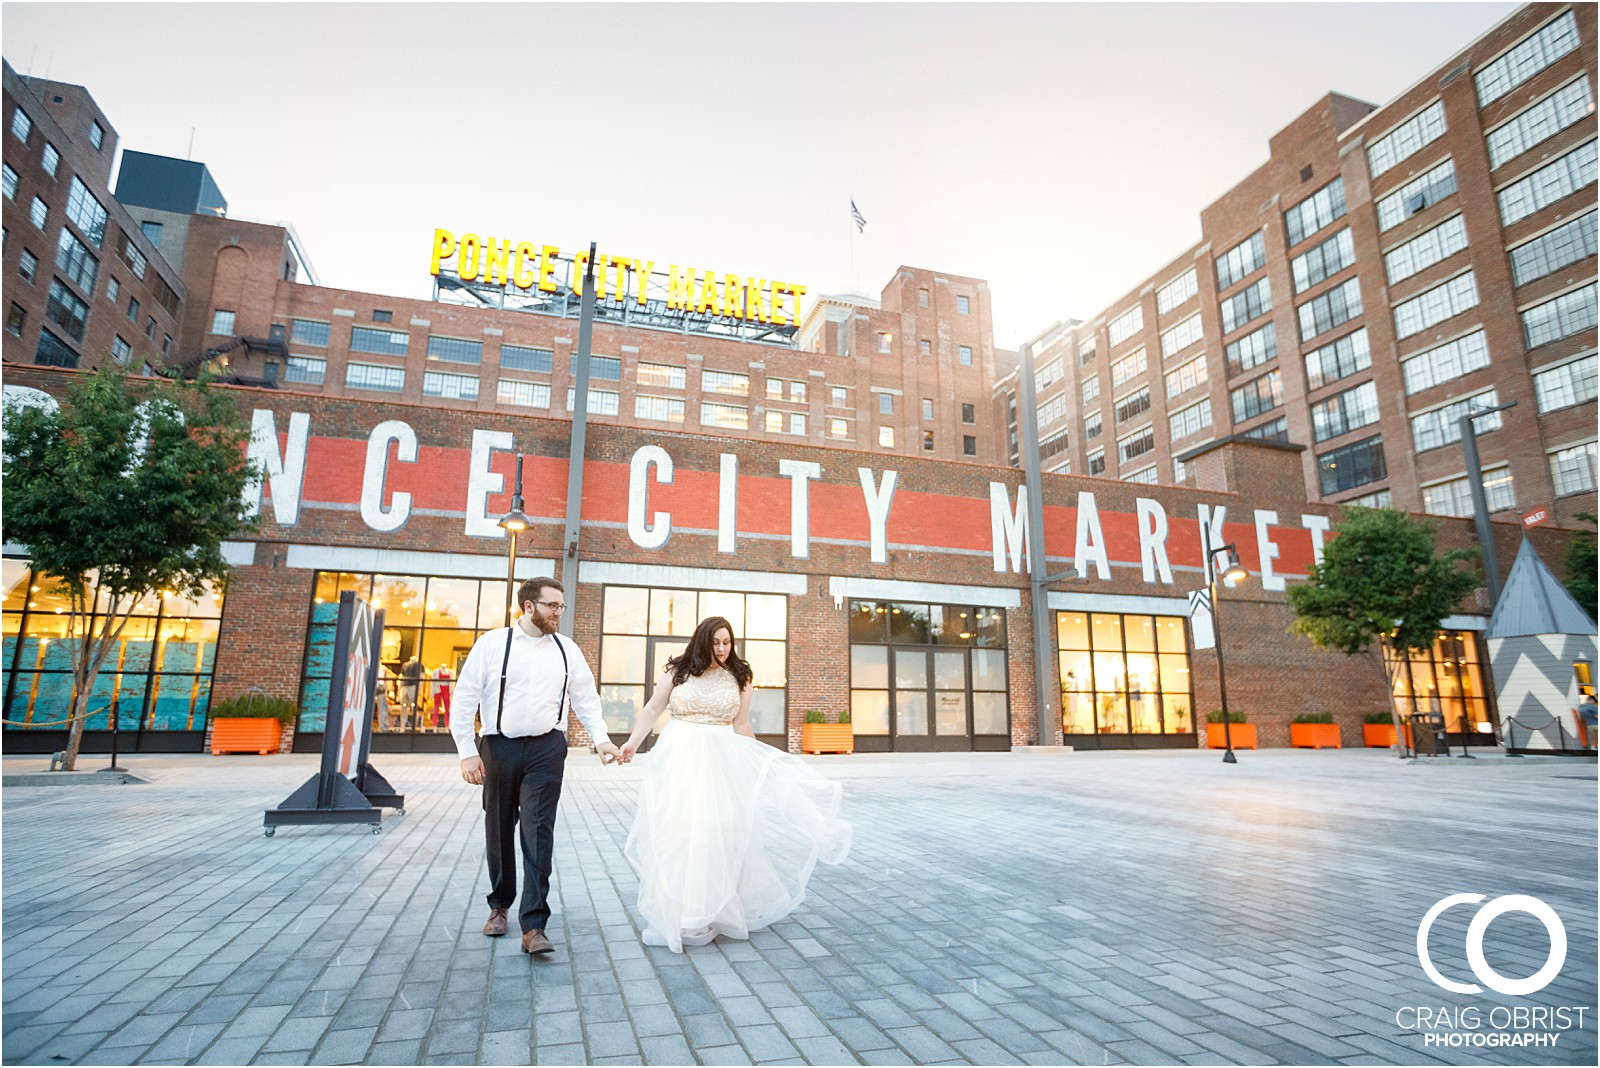 Ponce city markey Atlanta Beltline Piedmont Park engagement portraits_0019.jpg